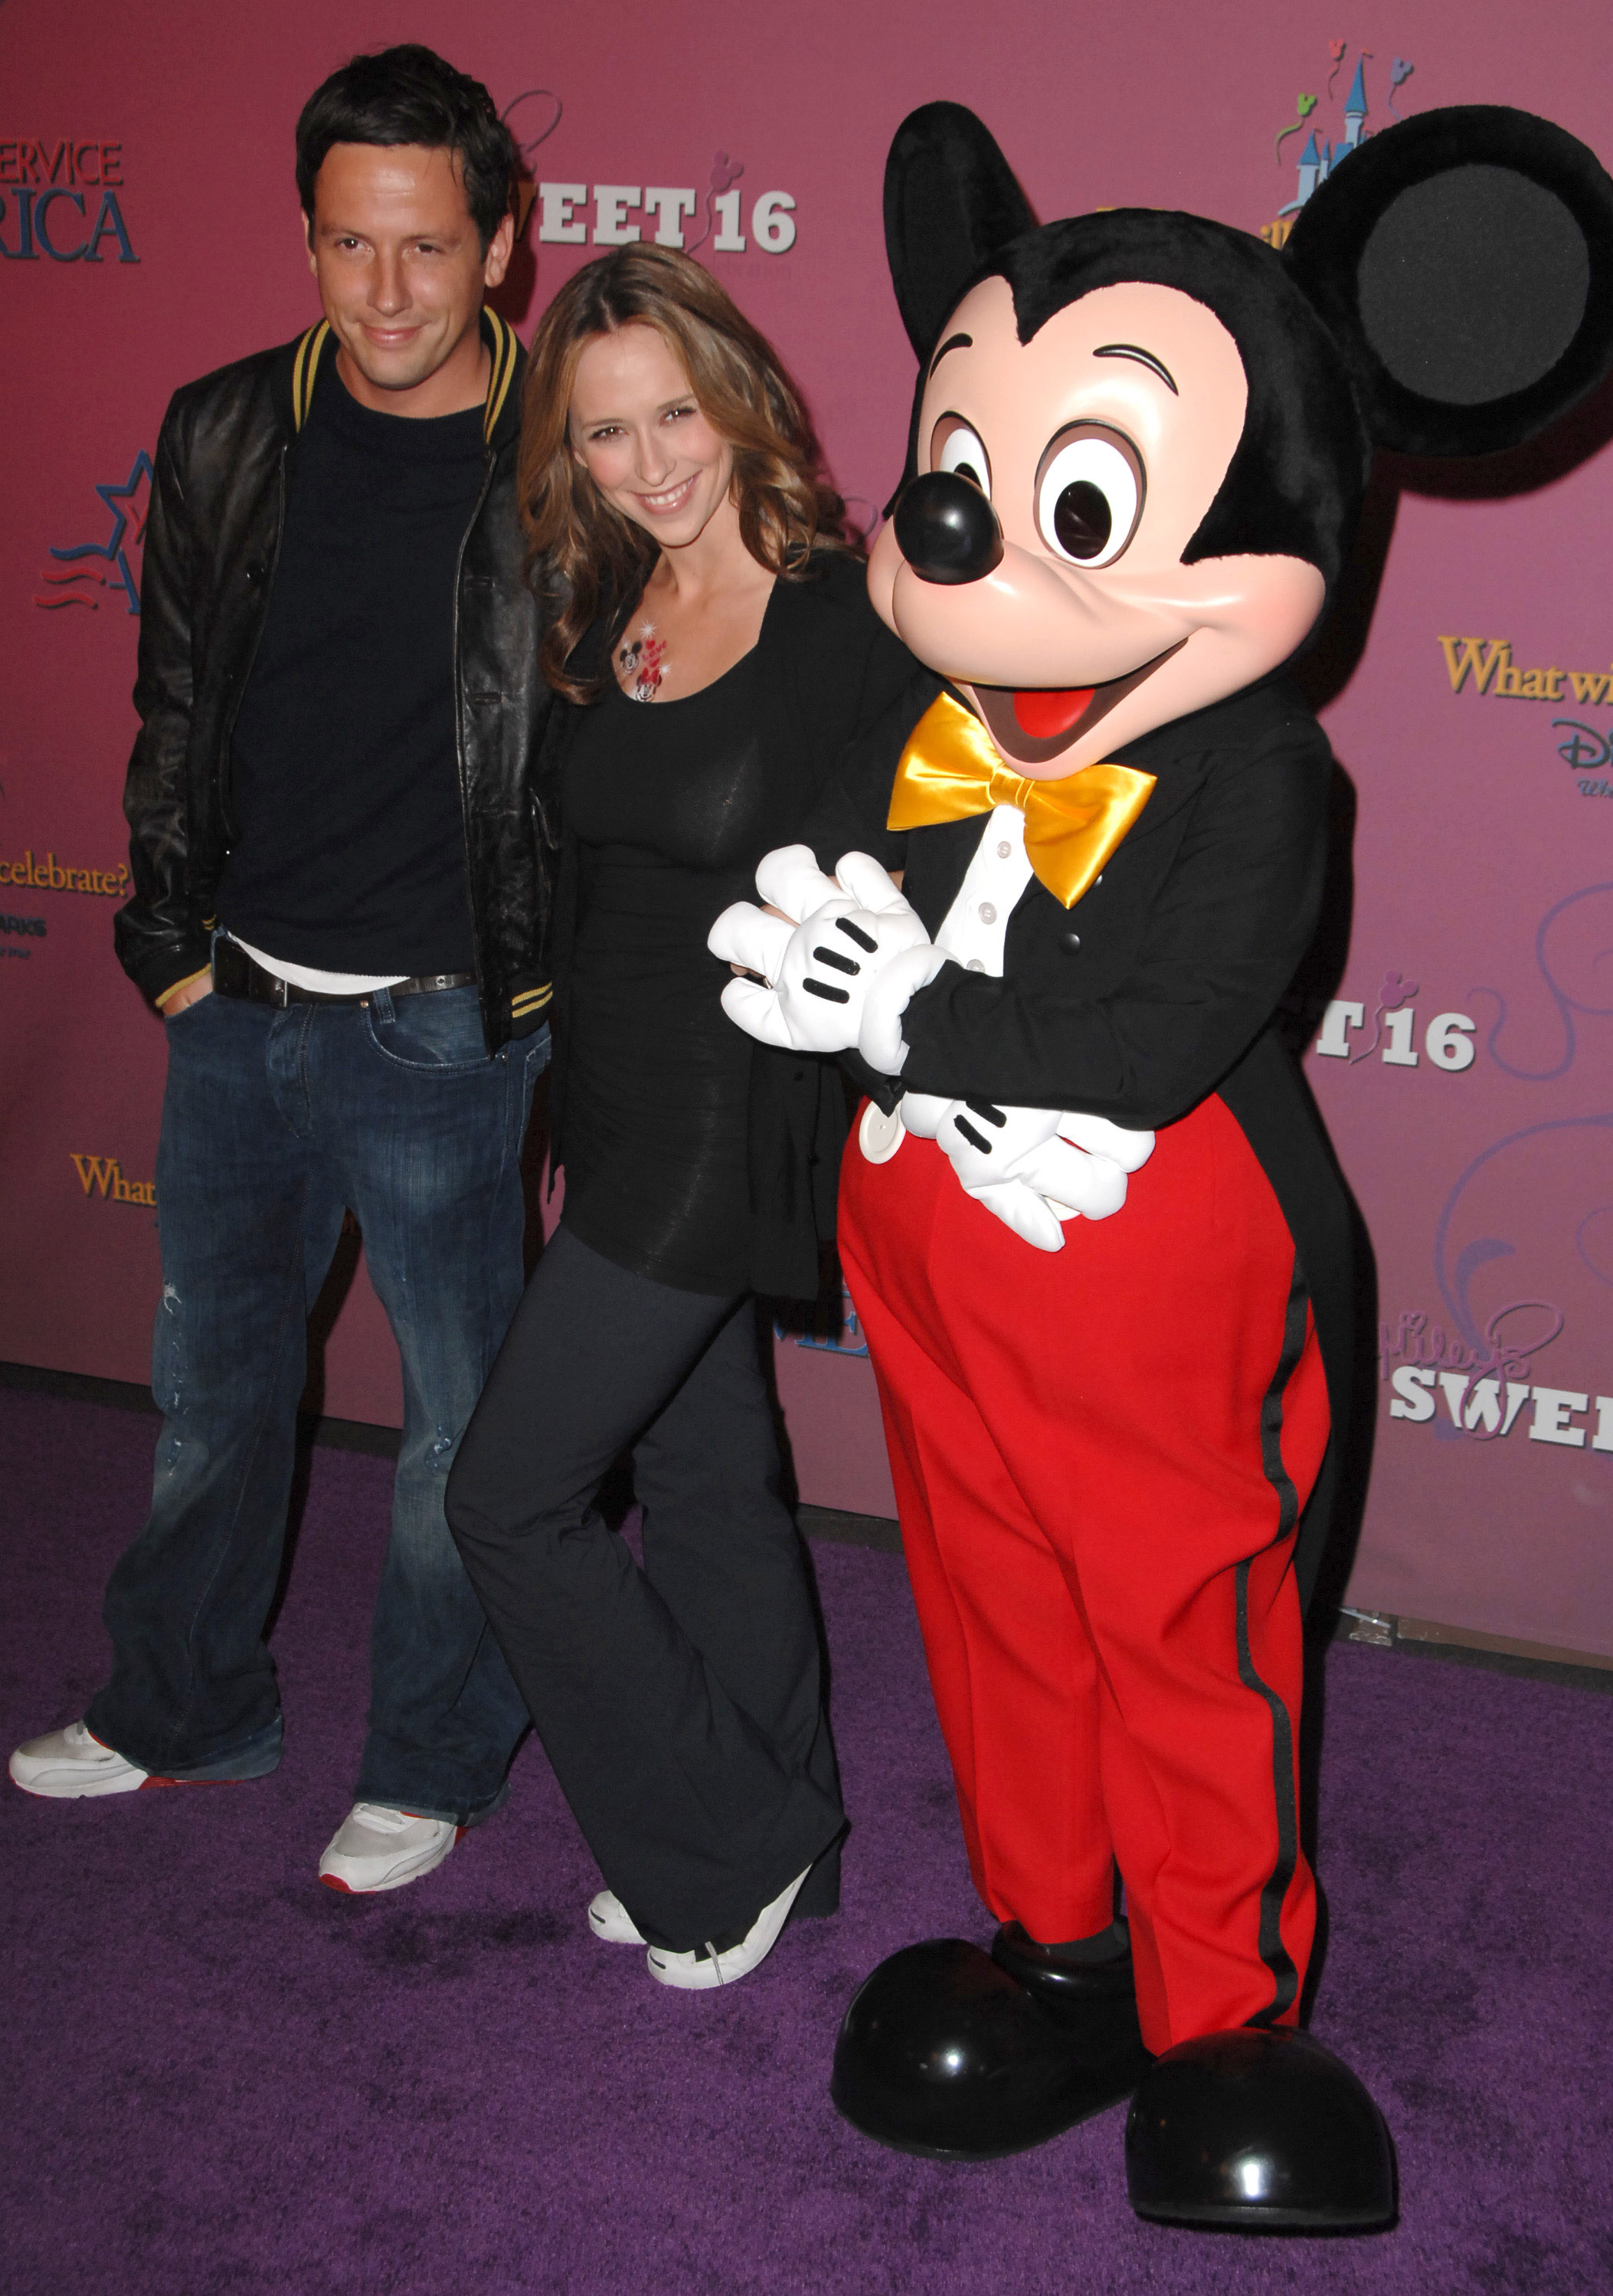 07929_Celebutopia-Jennifer_Love_Hewitt-Miley_Cyrus5_Sweet_16_birthday_celebration-07_122_670lo.jpg